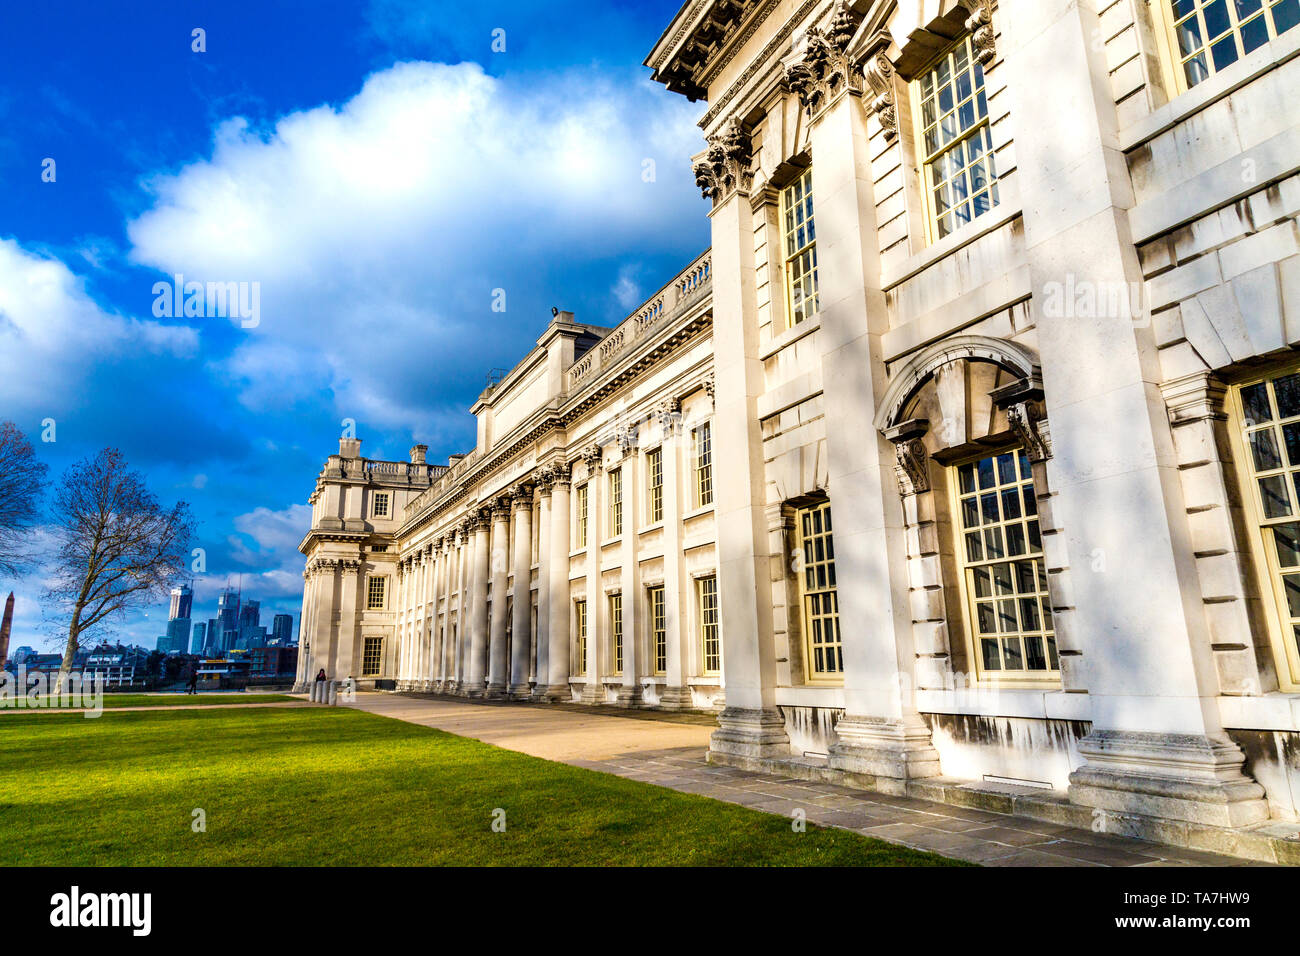 Classical style building of Trinity Laban Conservatoire of Music and Dance exterior in Old Royal Naval College, Greenwich, London. UK - Stock Image